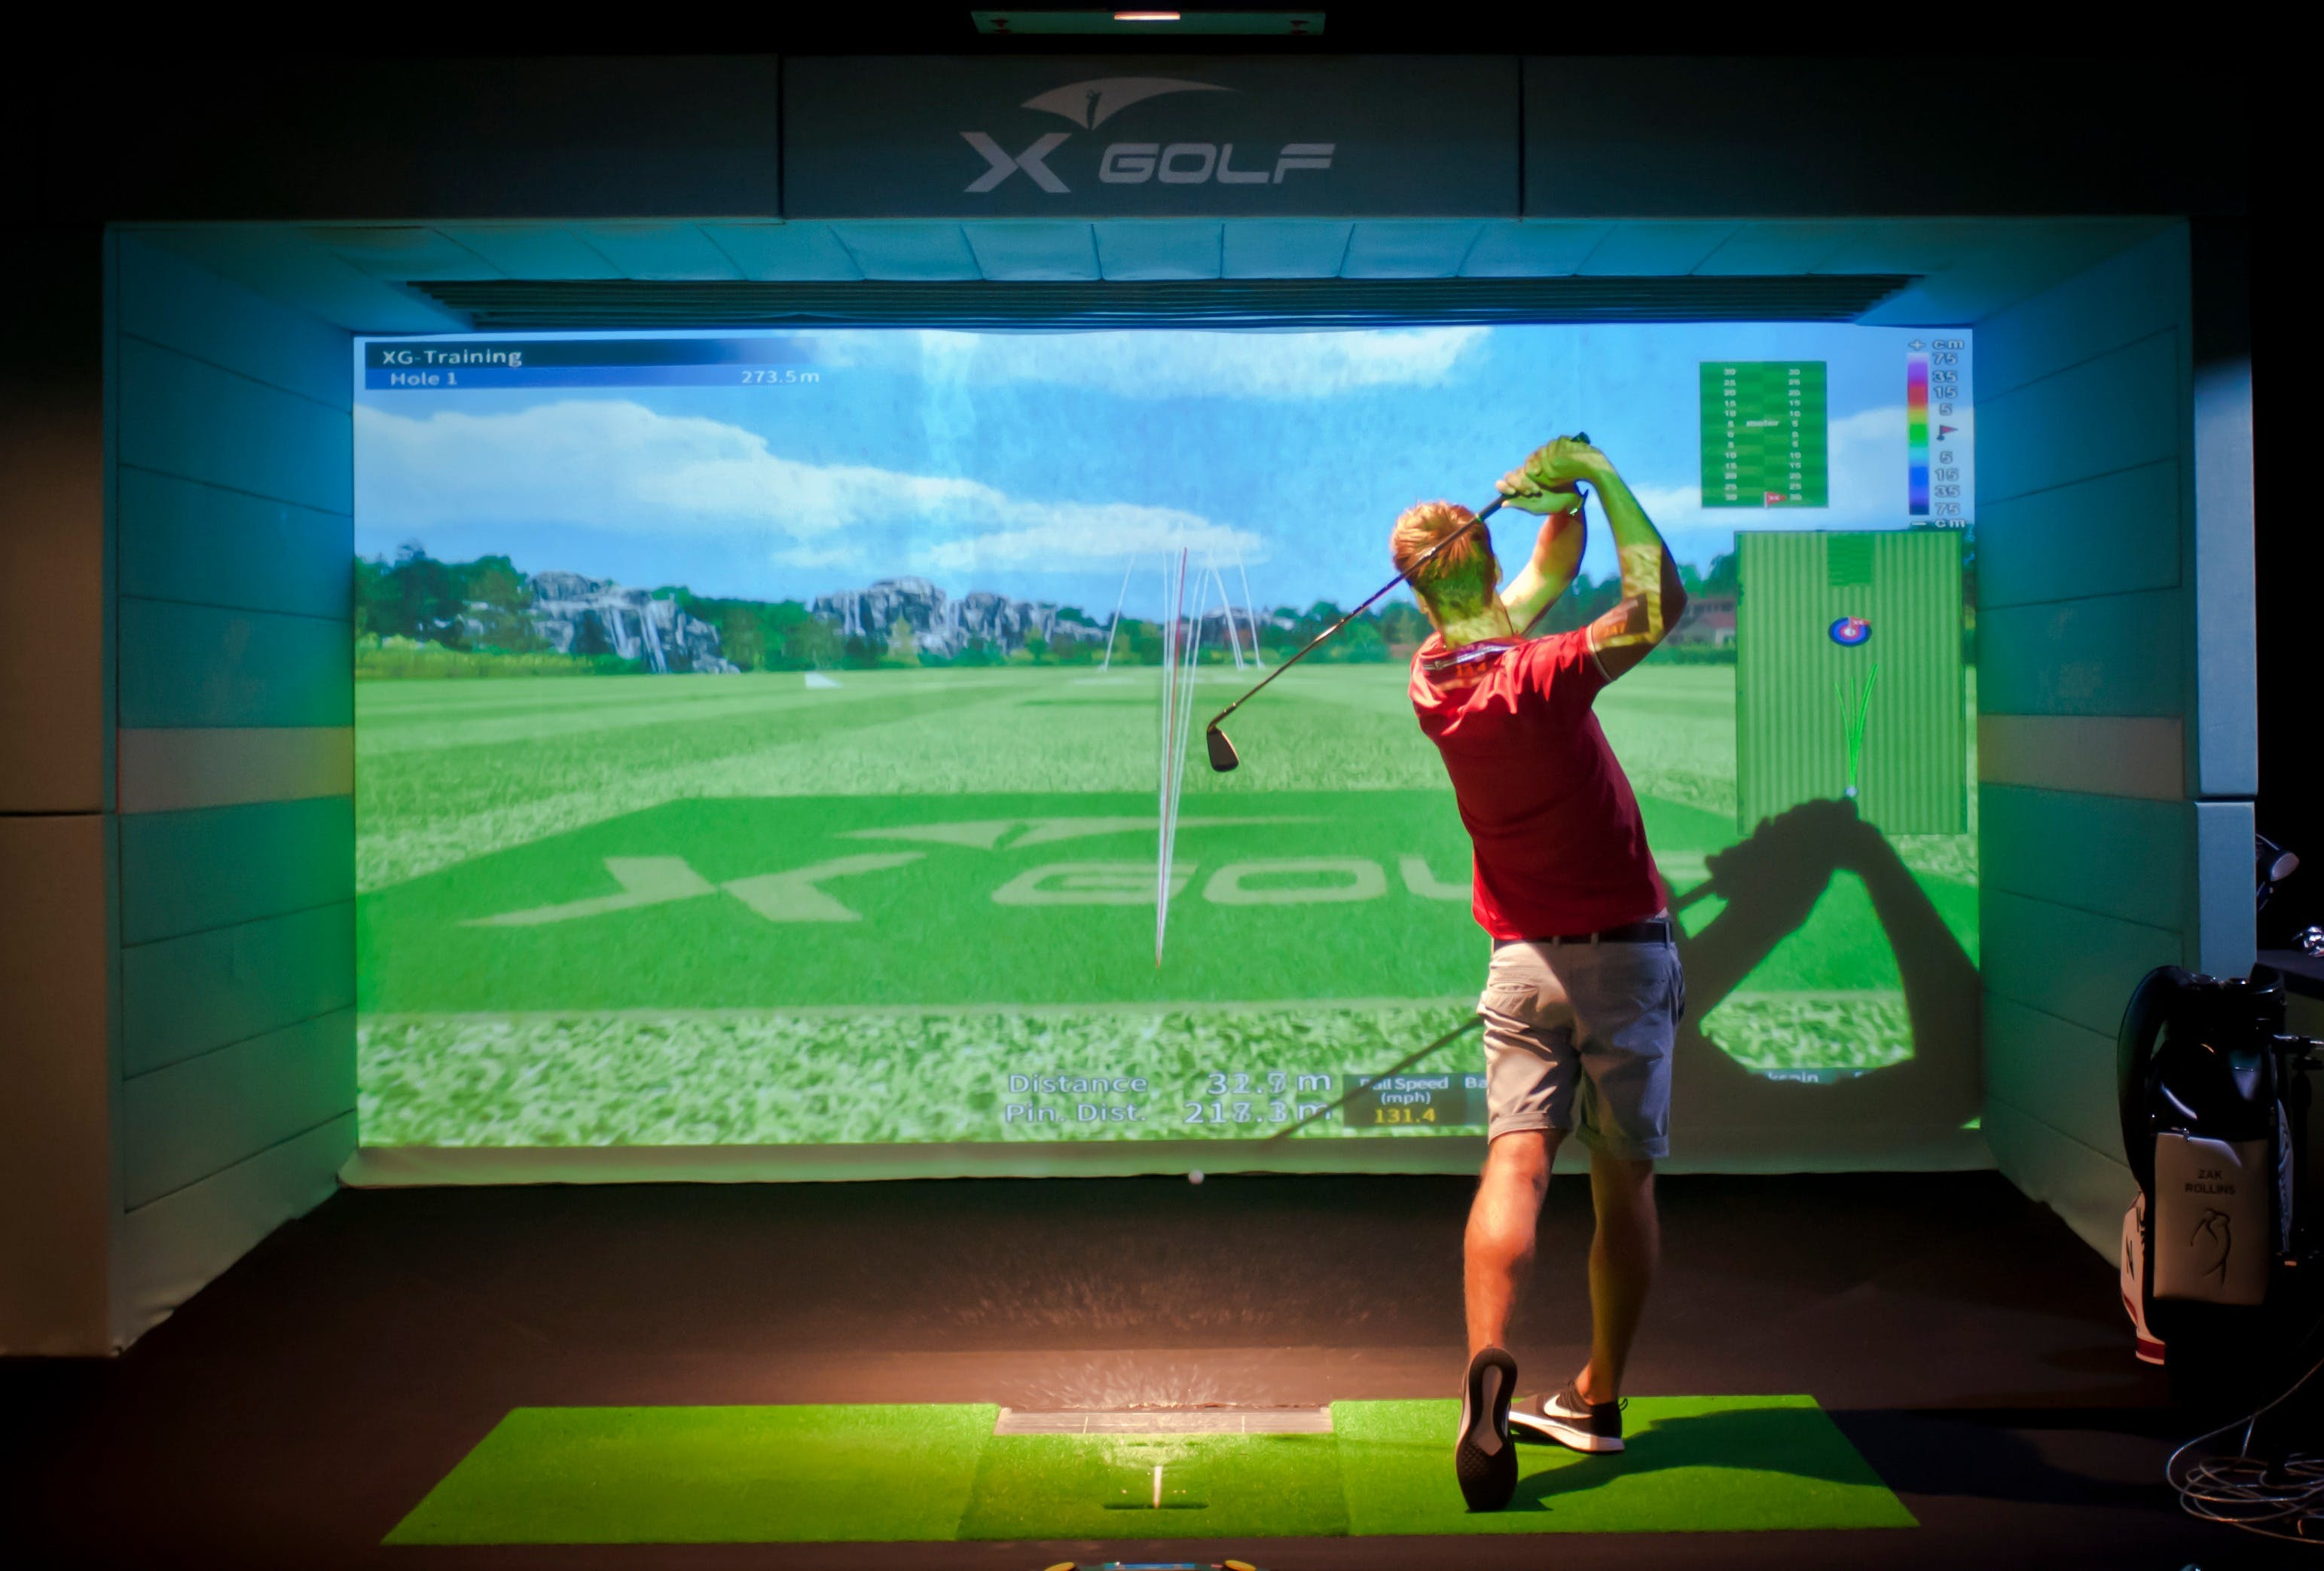 X-Golf Marion- Real, Fast, Fun -Indoor Golf!